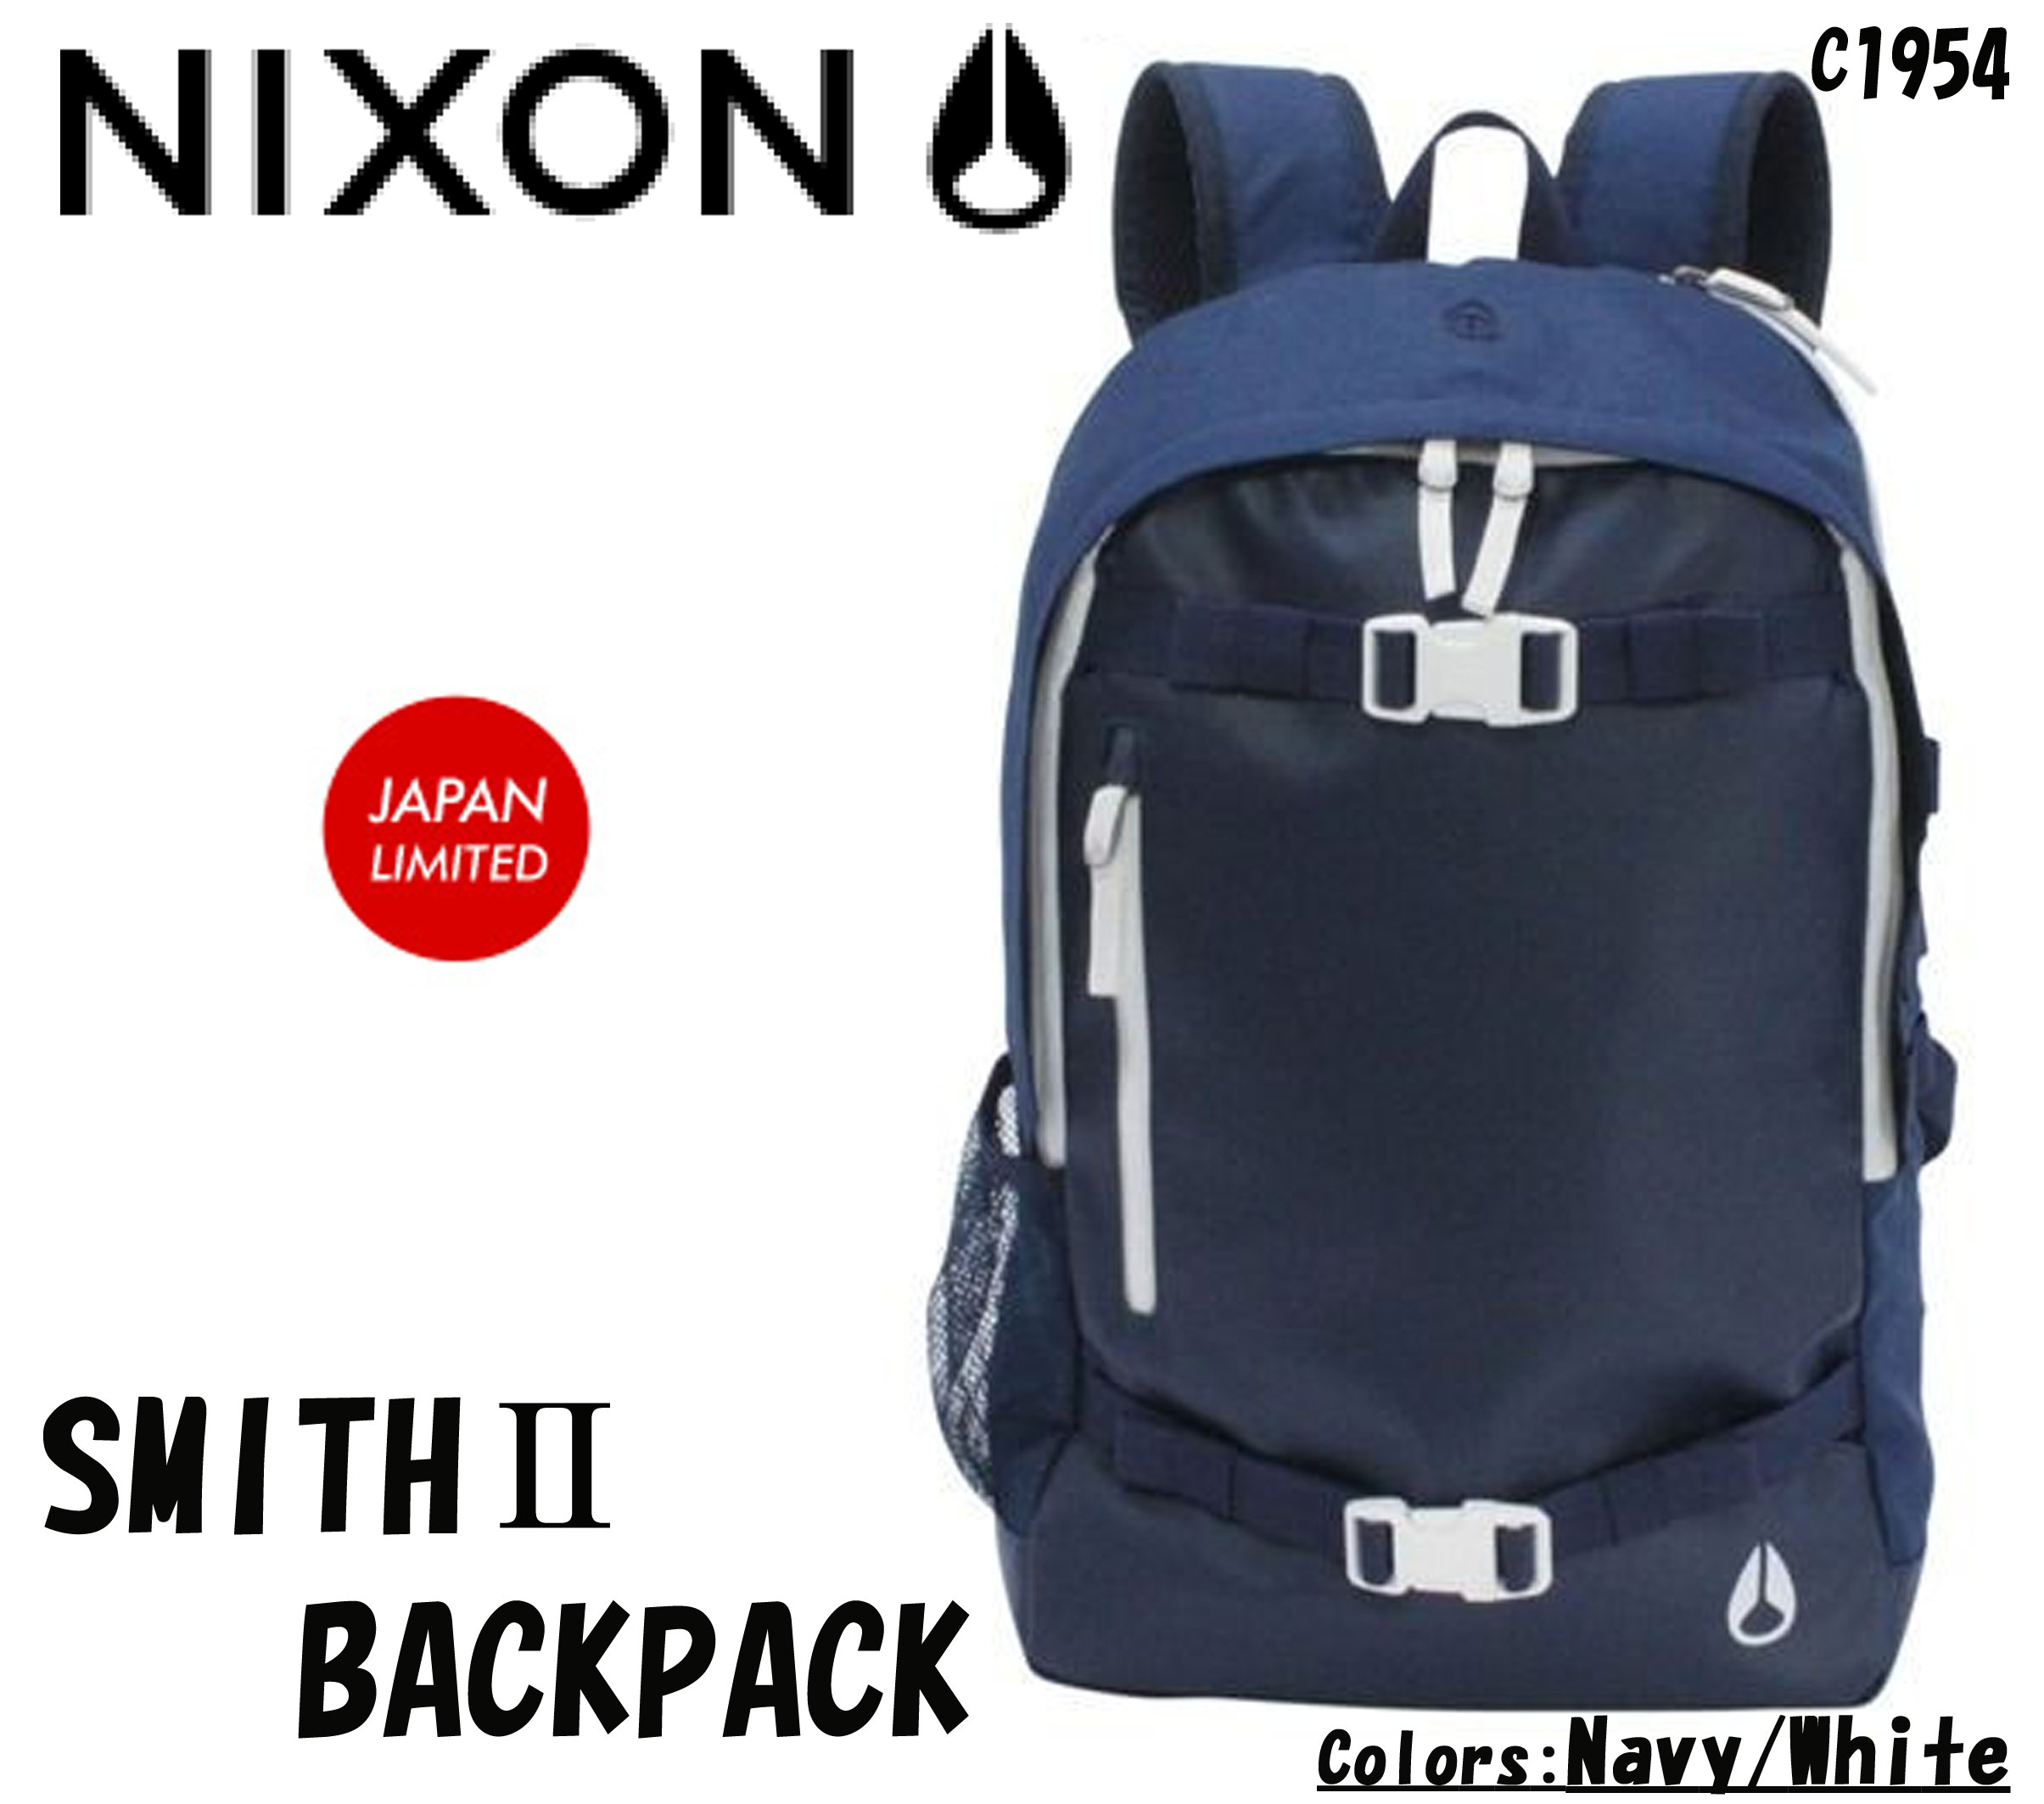 nixon_backpack_smith2_japan_mein1